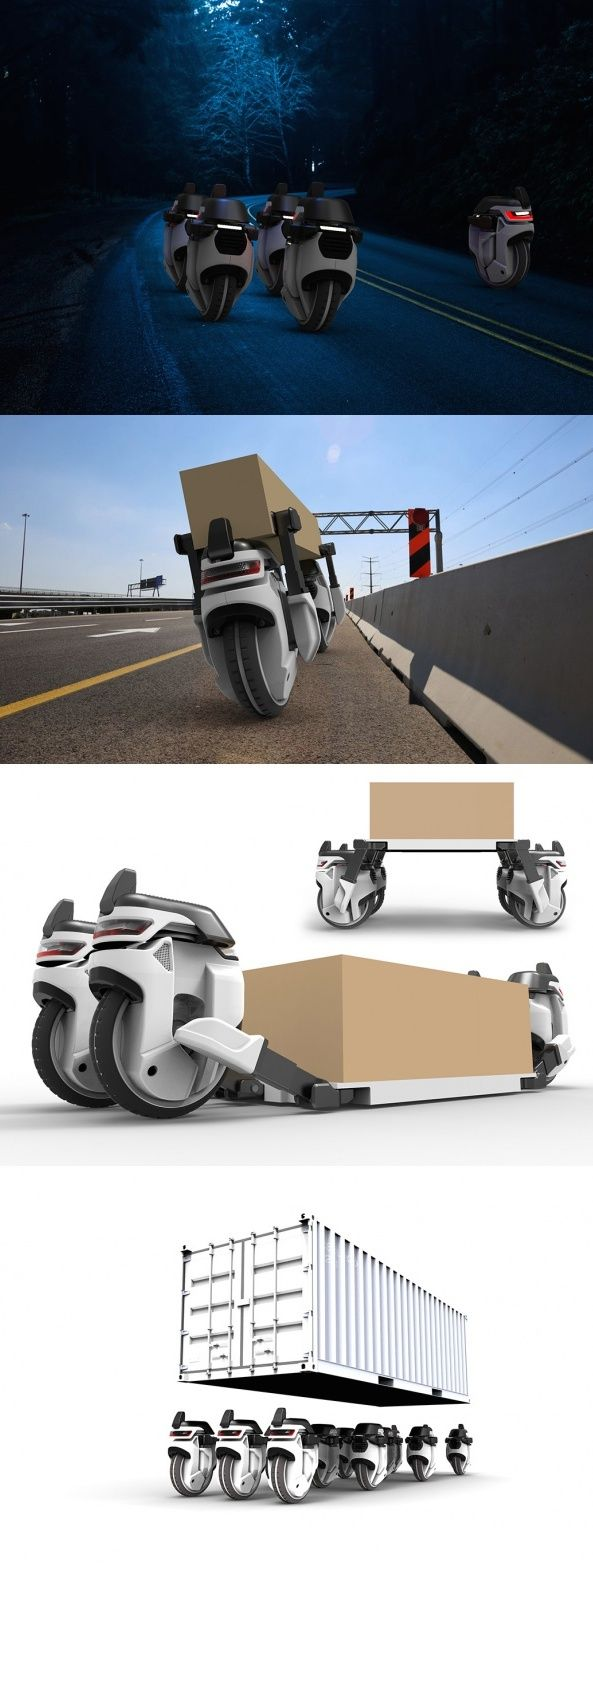 The Transwheel concept reimagines package distribution as a round-the-clock…